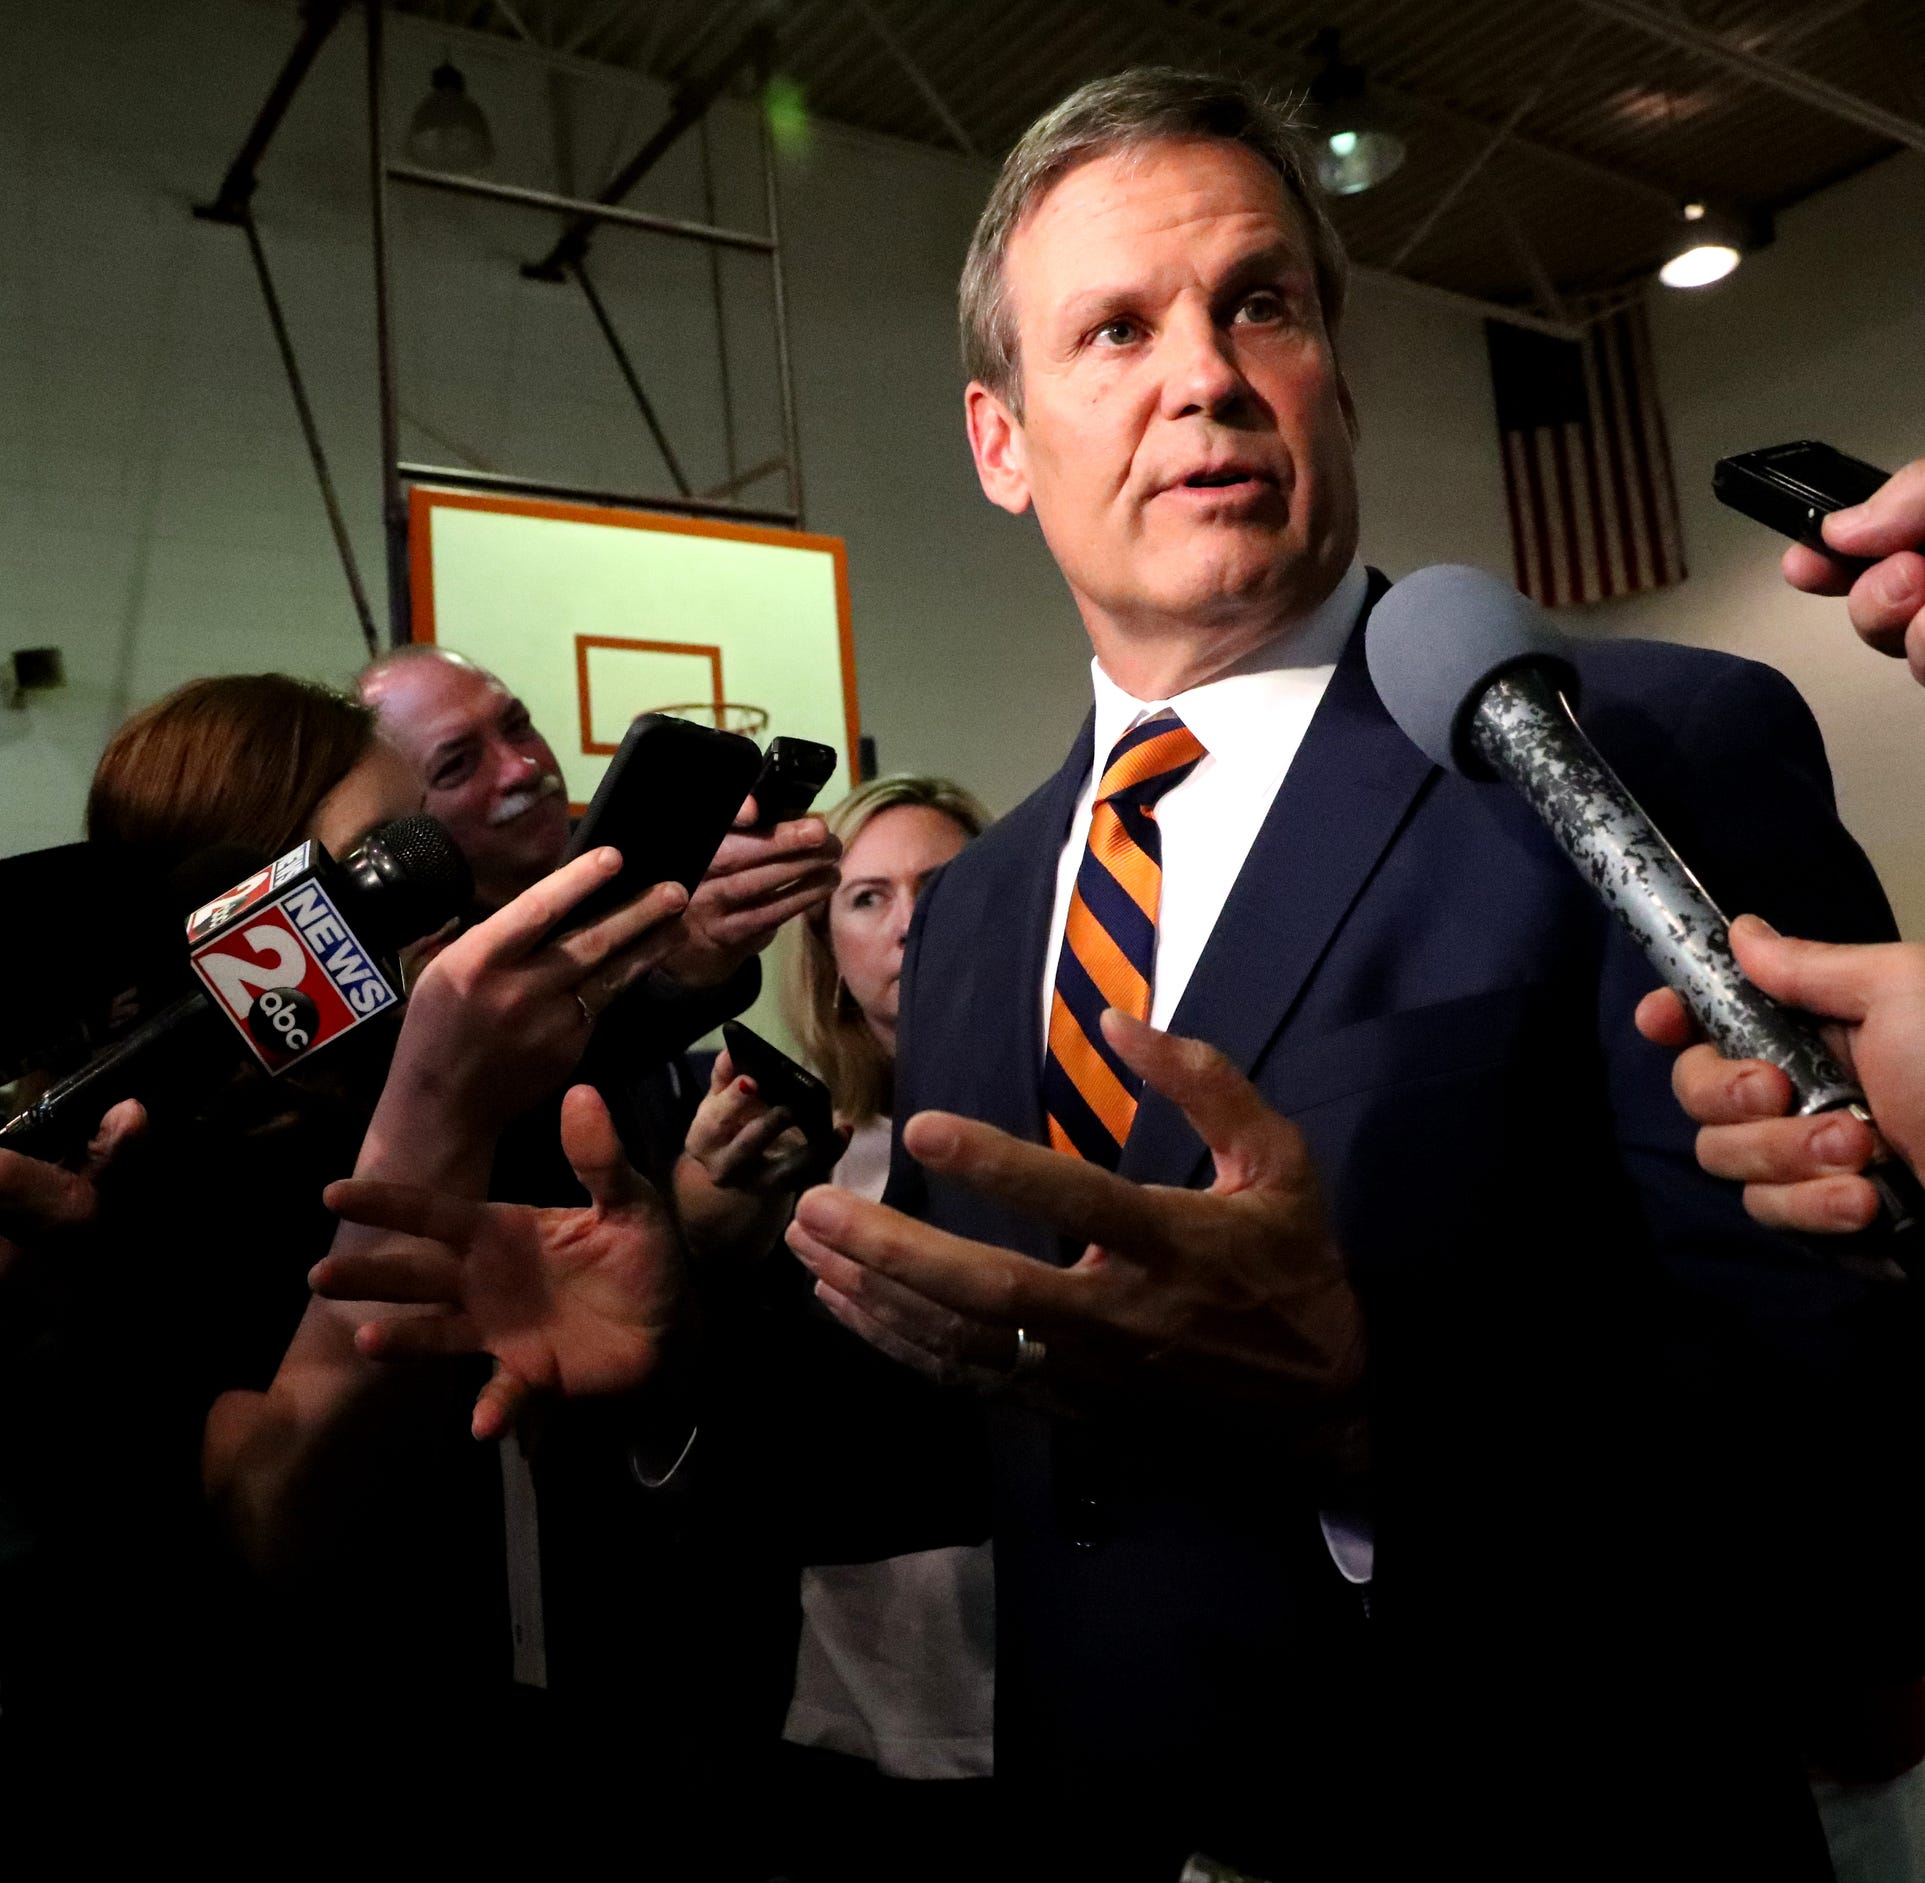 Tennessee Governor Bill Lee addresses questions from the media about Tennessee House Speaker Glen Casada's former questionable text messages, during a CVS/TRC-Smyrna Mock Store Grand Opening Ceremony on Wednesday, May 8, 2019, at the Tennessee Rehabilitation Center, in Smyrna.